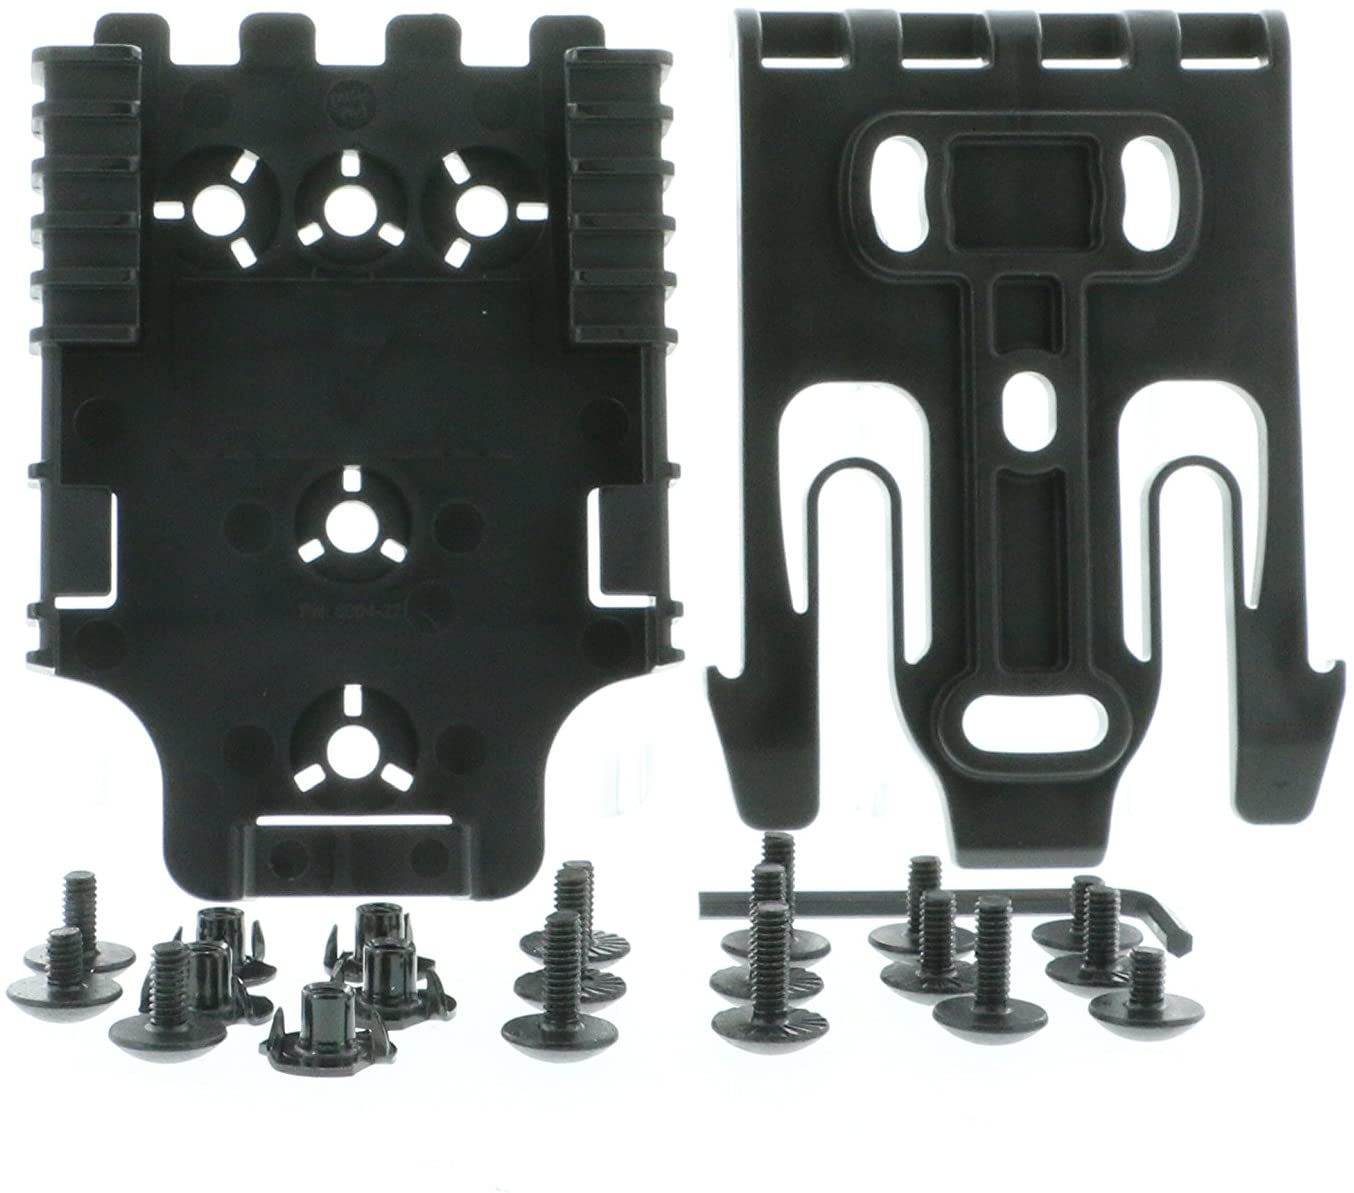 Safariland QLS Kit, (1 ea.) QLS 19 Fork & (2 ea.) QLS 22 Receivers Holsters, Black, Single Kit Only